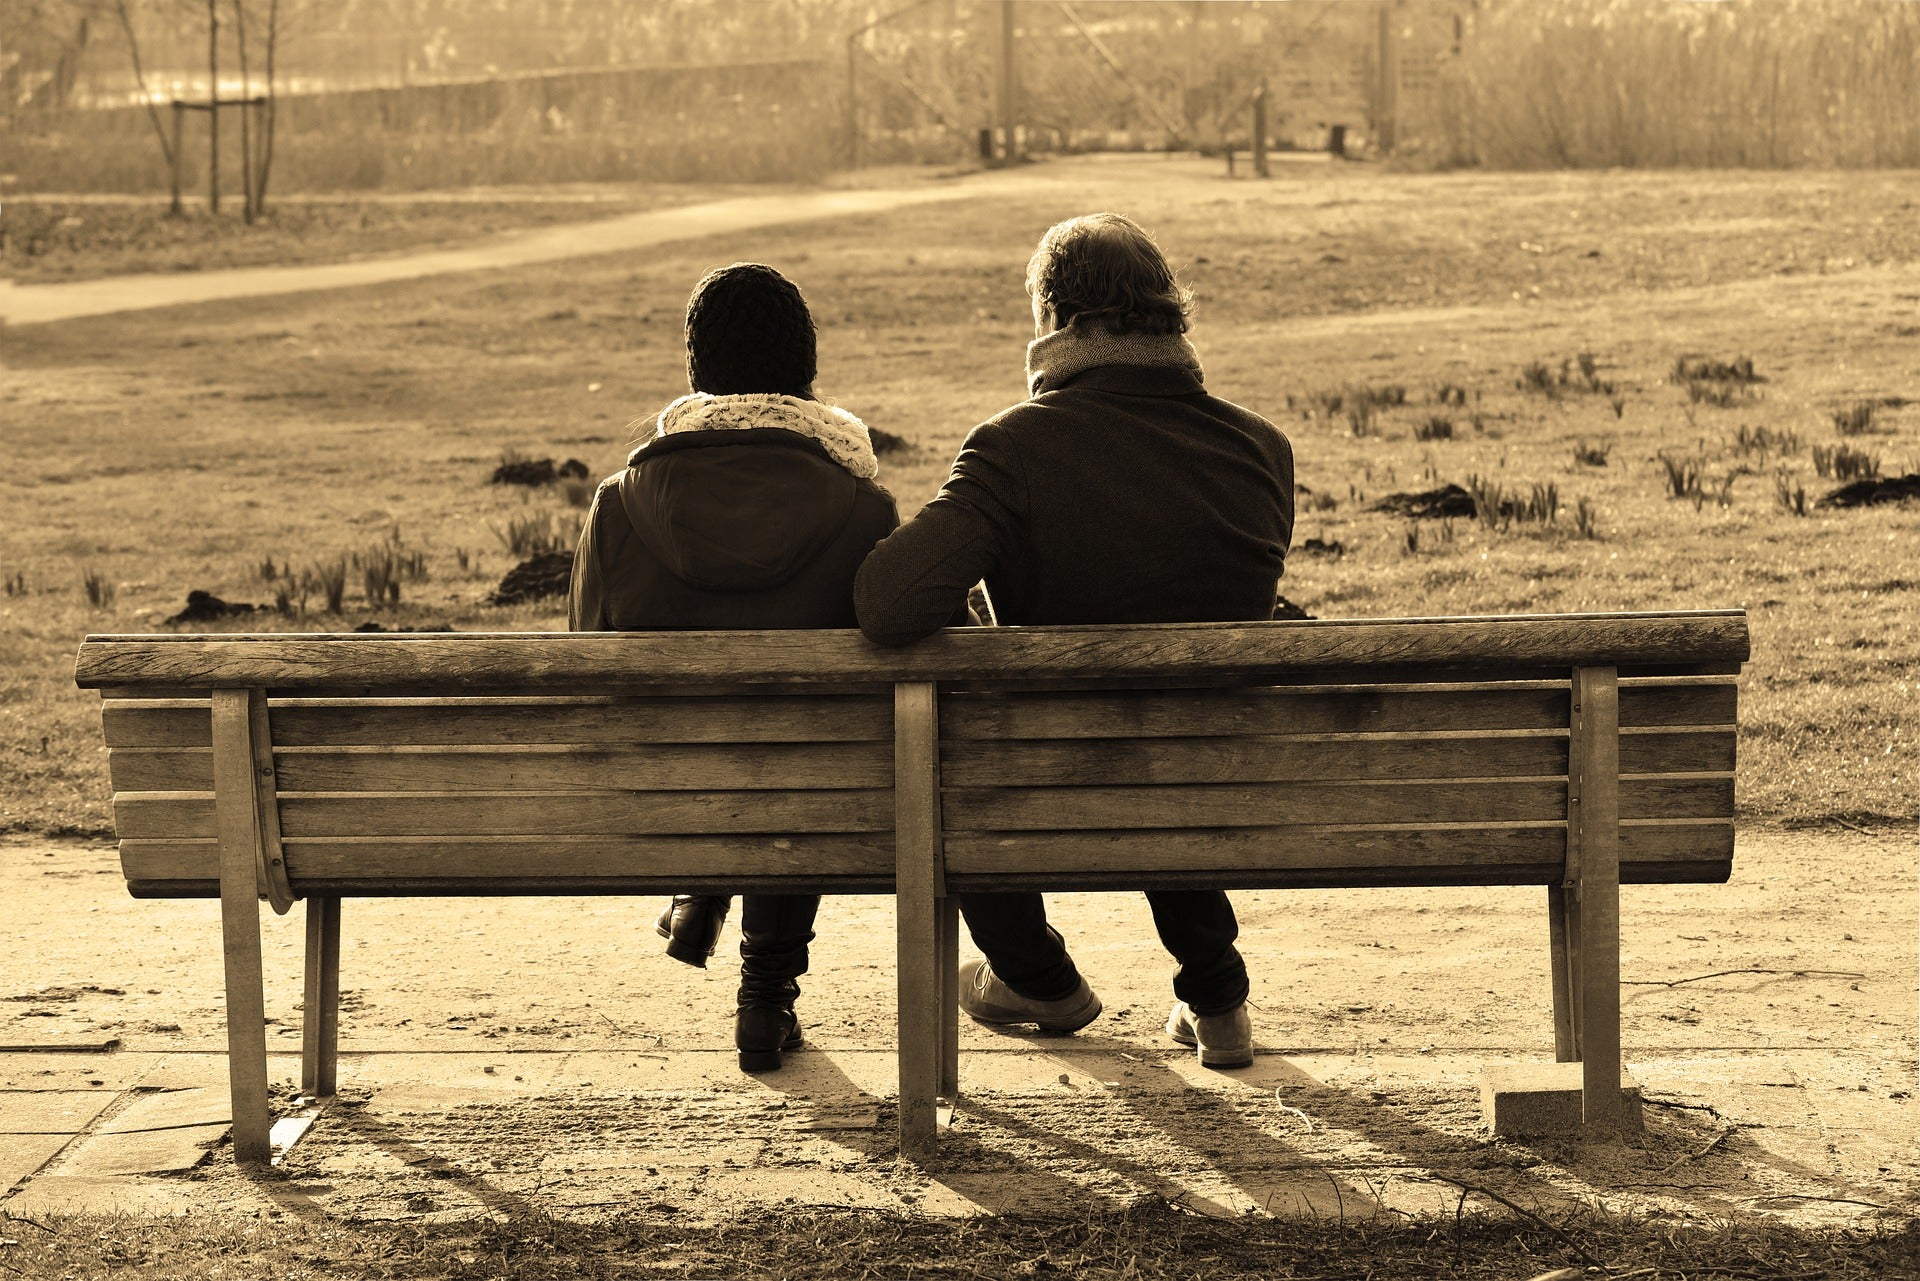 Man and woman in winter clothing sitting on park bench.